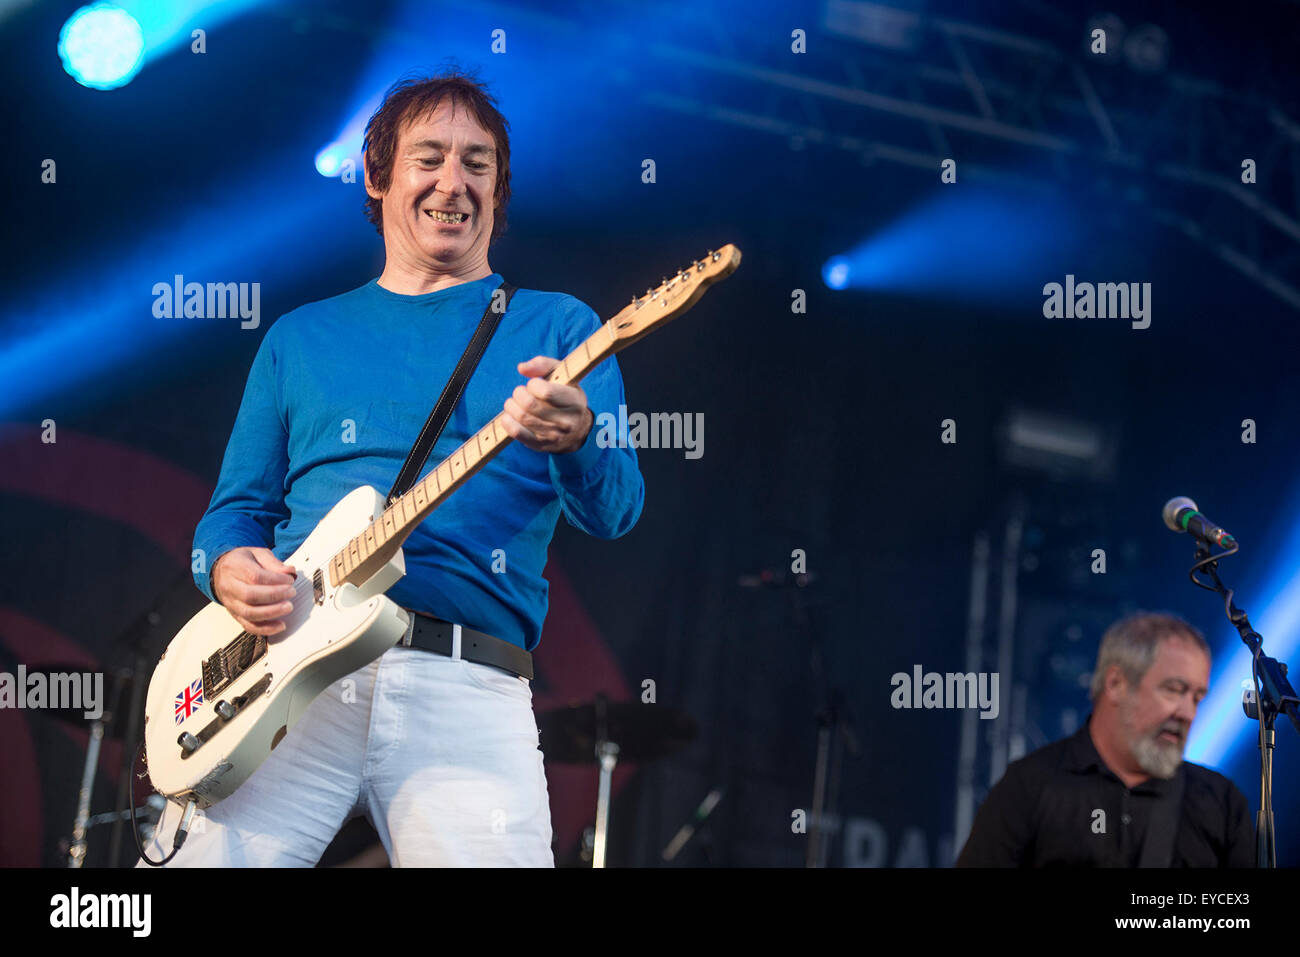 Sheffield, UK. 25th July 2015.  The Buzzcocks perform live on the main stage at Sheffield's Tramlines Festival - Stock Image